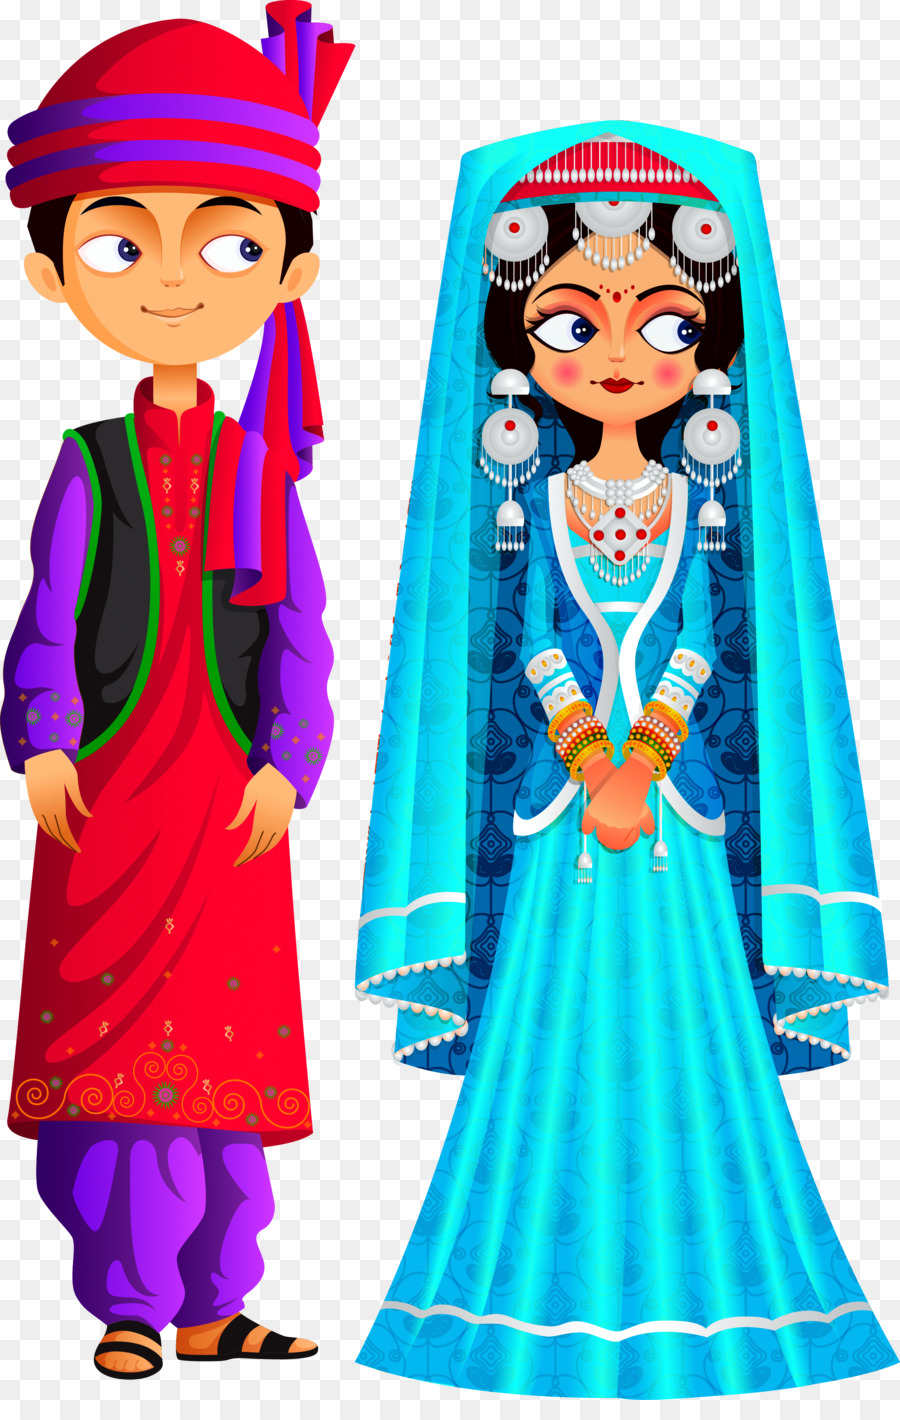 Kashmir Stock photography Weddings in India Clip art - Dresses png ...